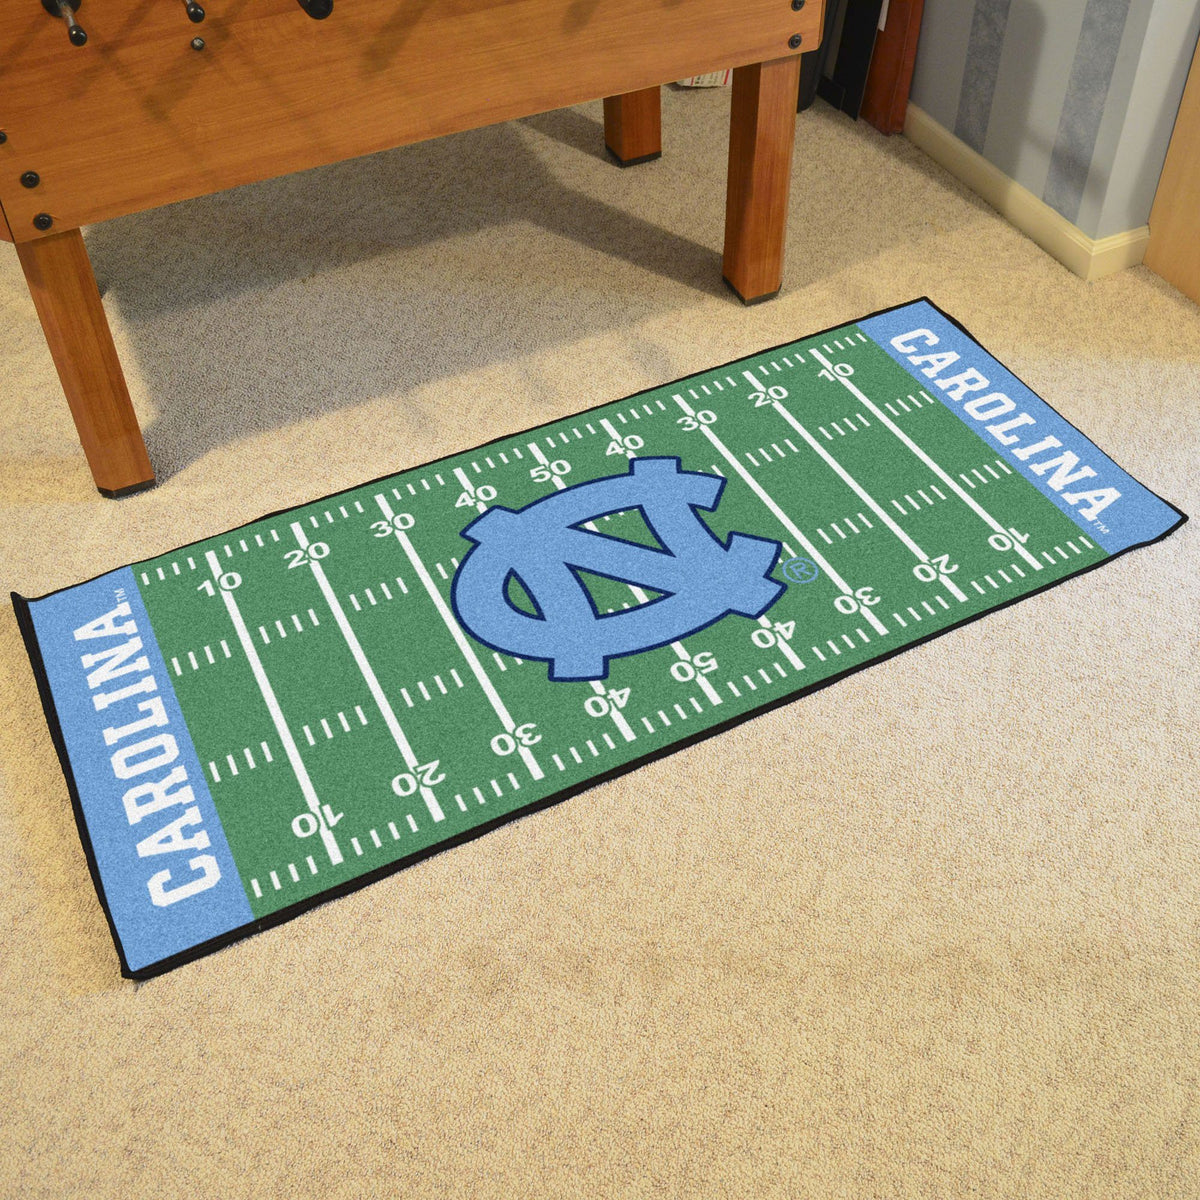 Collegiate - Football Field Runner Collegiate Mats, Rectangular Mats, Football Field Runner, Collegiate, Home Fan Mats North Carolina 2